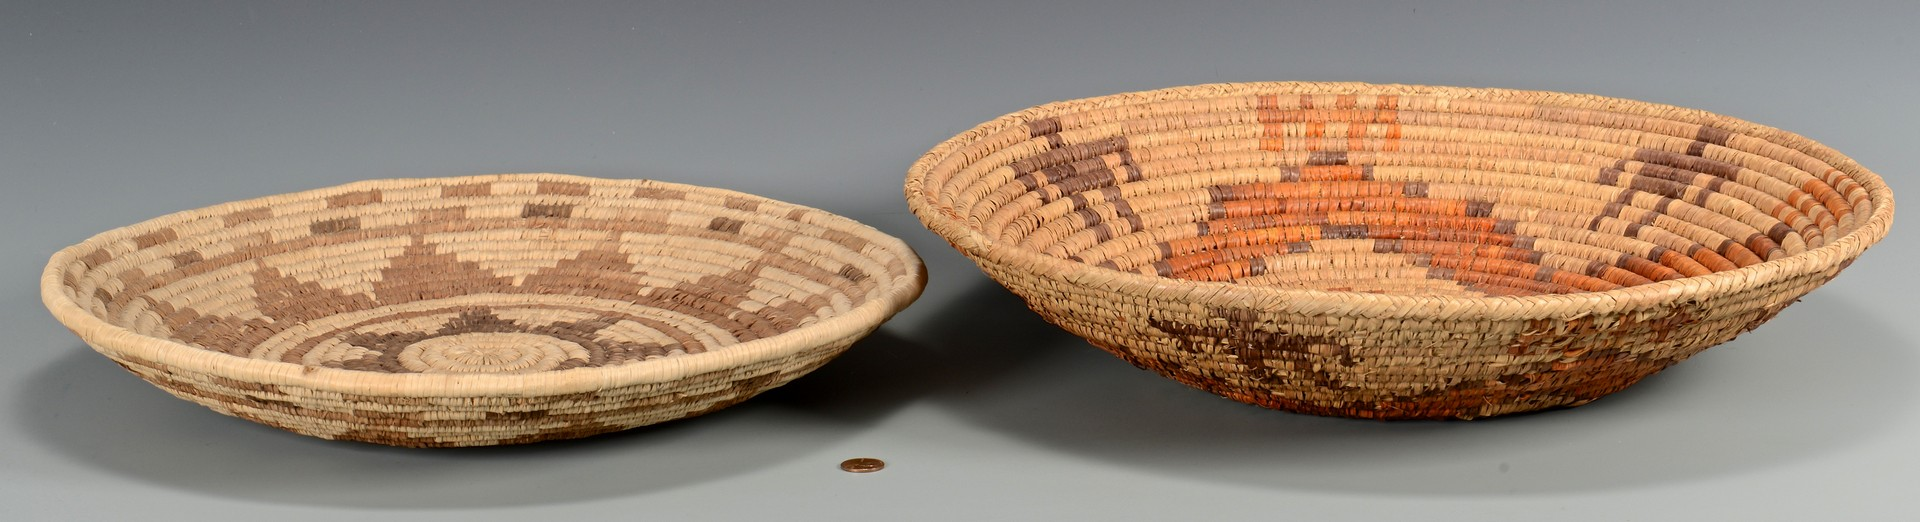 Lot 508: Hopi and Other Coiled Baskets